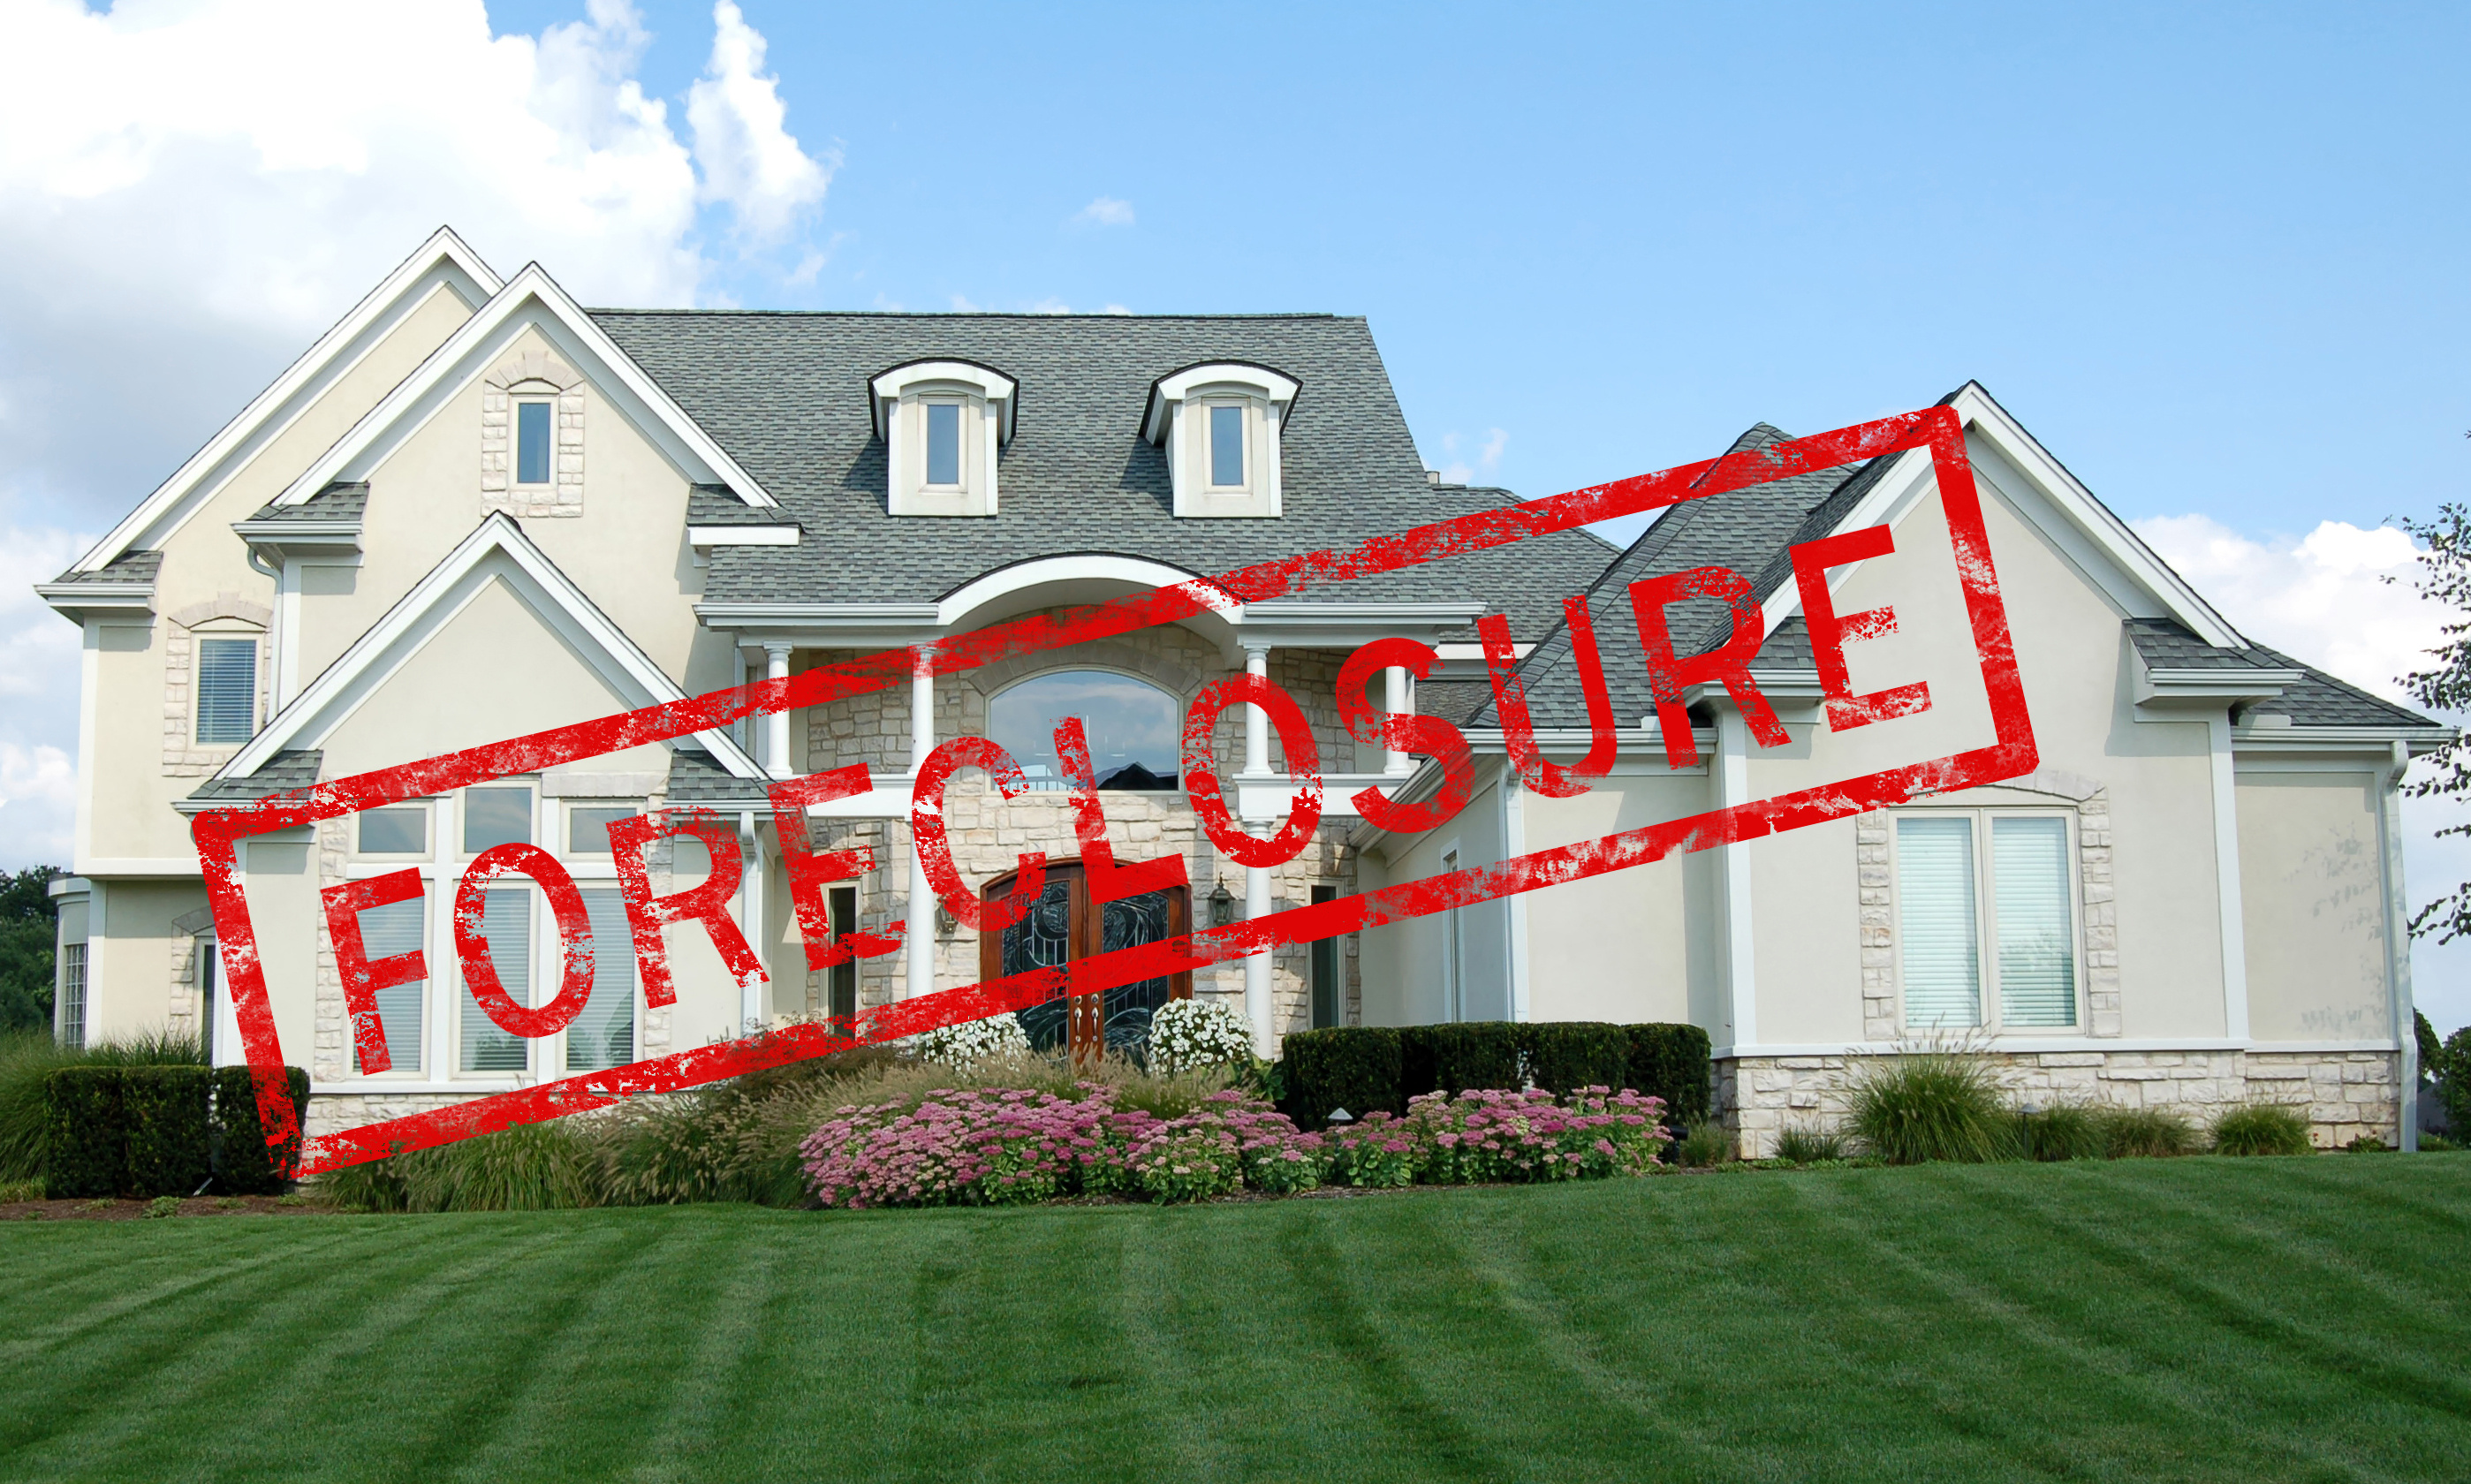 Call MIDWEST VALUATION SERVICE, LLC to discuss valuations regarding Miller foreclosures